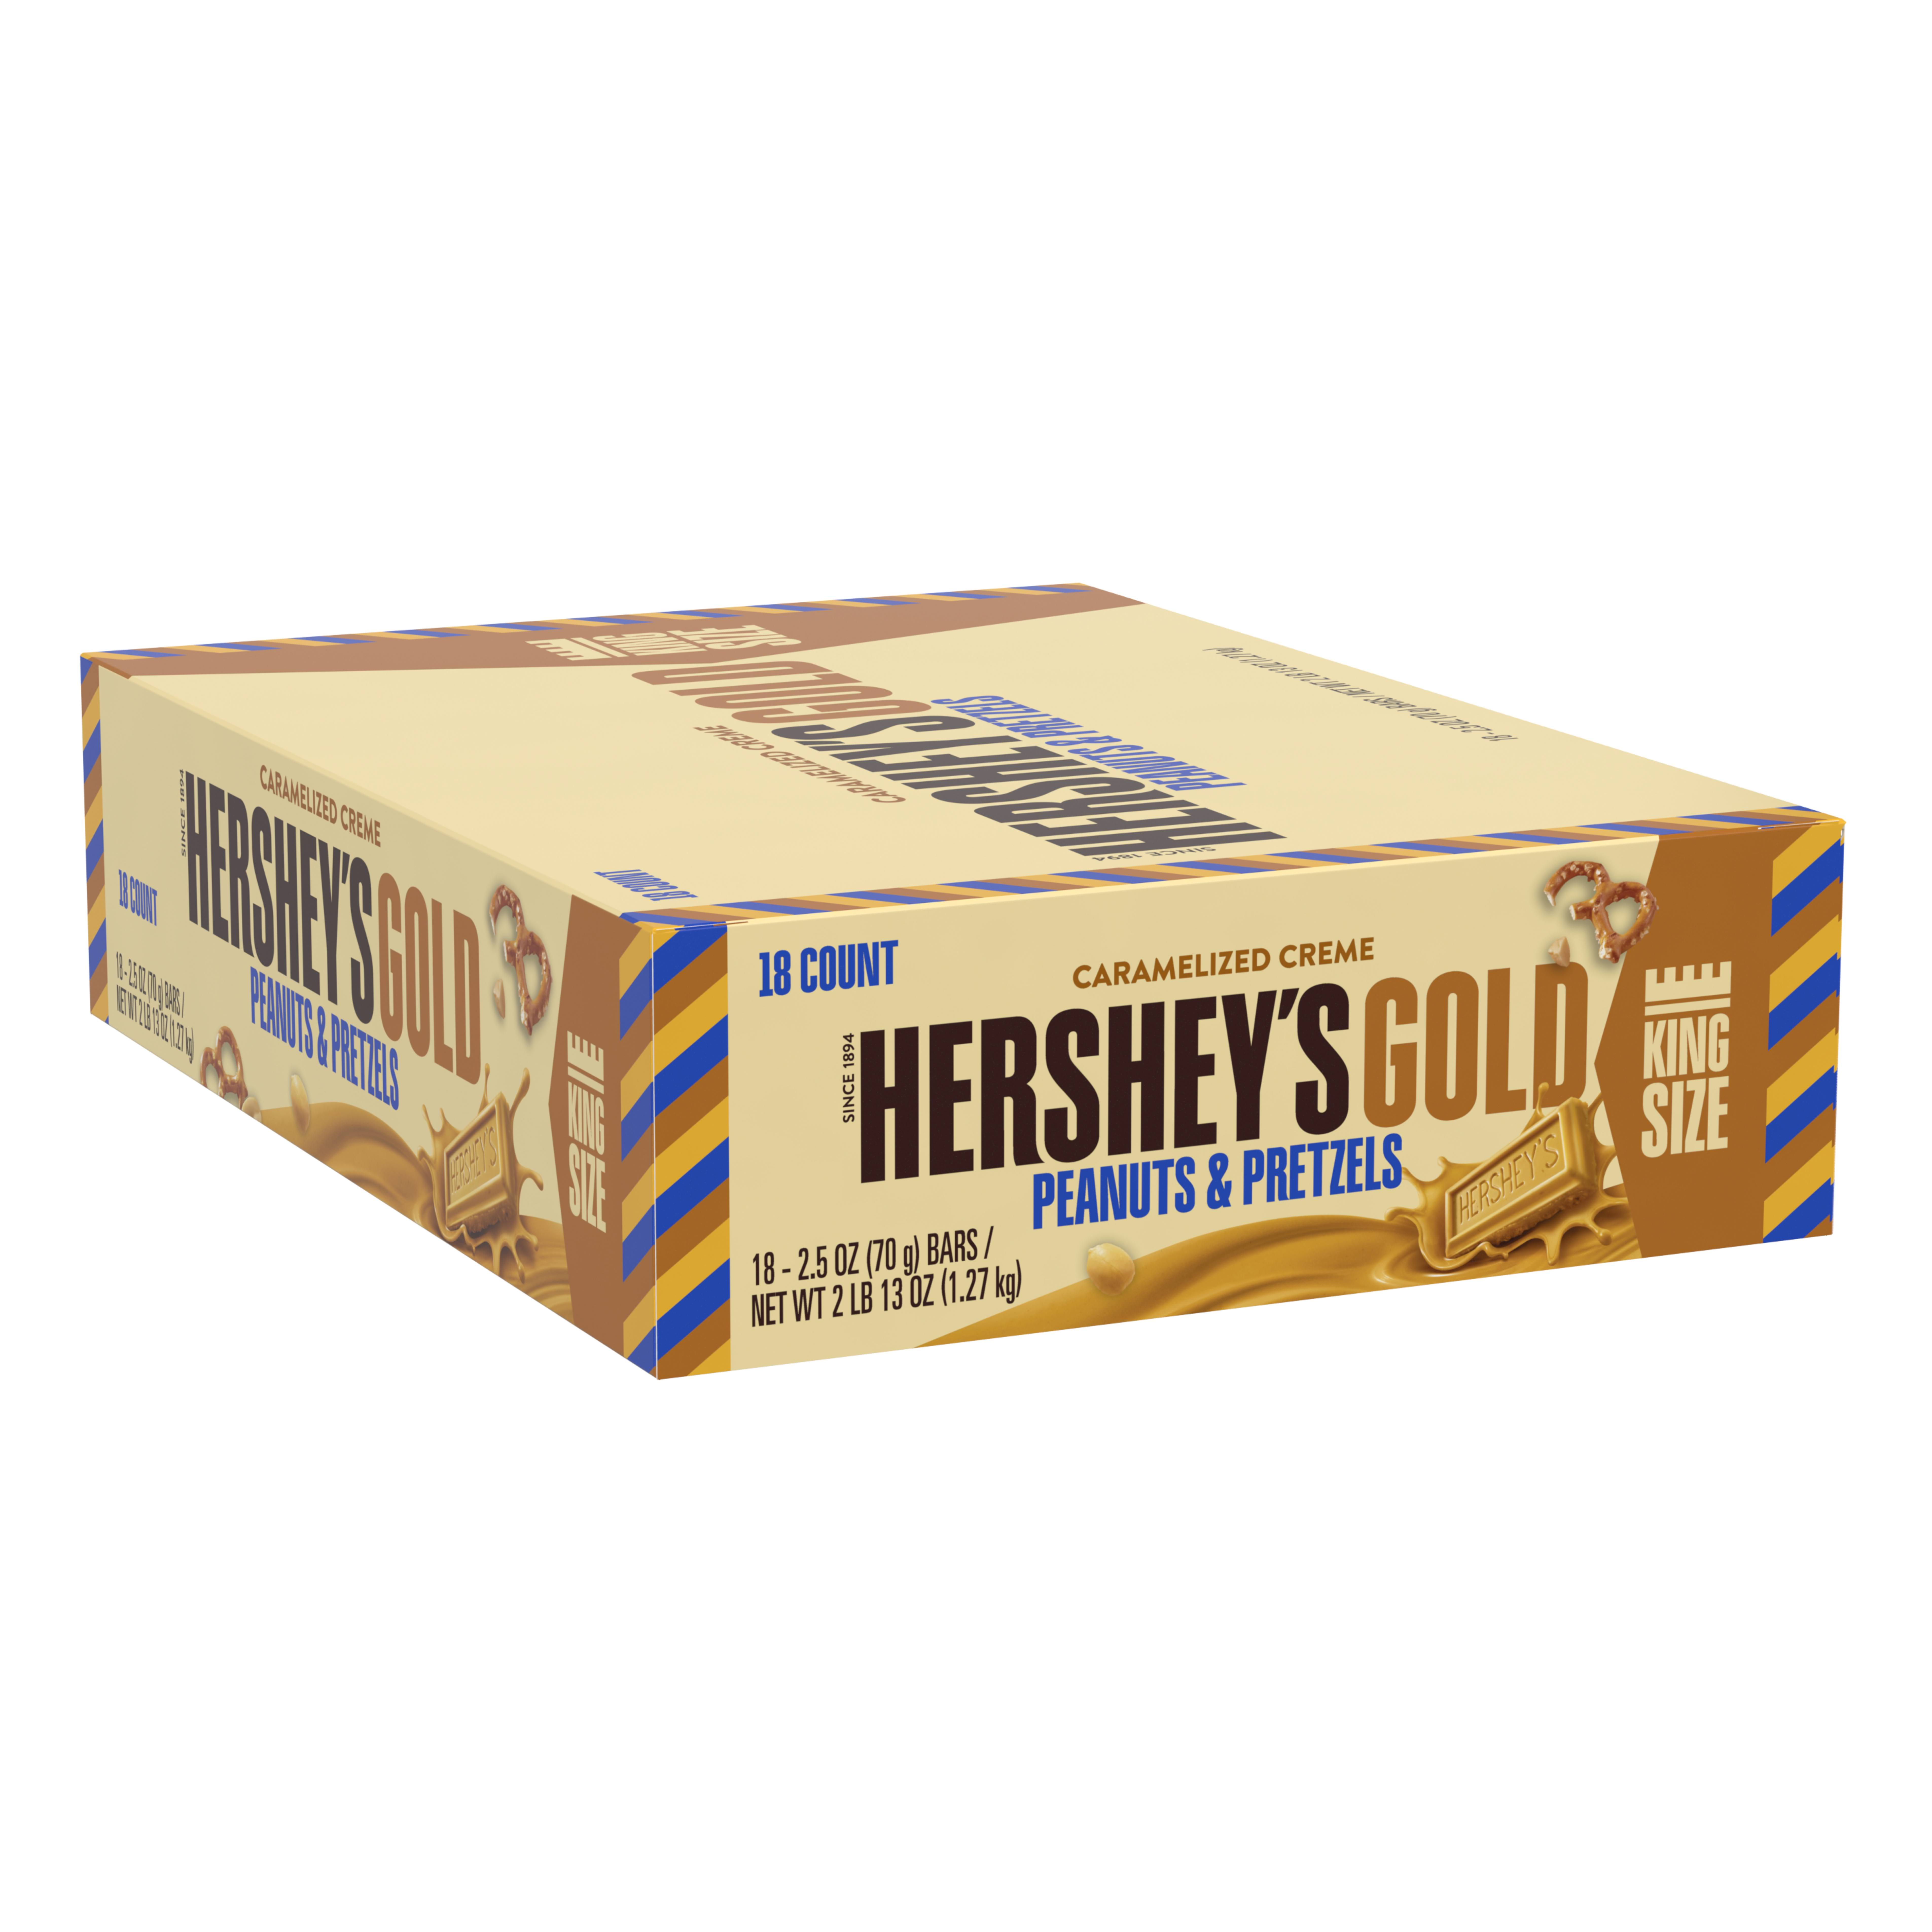 HERSHEY'S GOLD King Size Bar, 2.5 oz, 18 Count